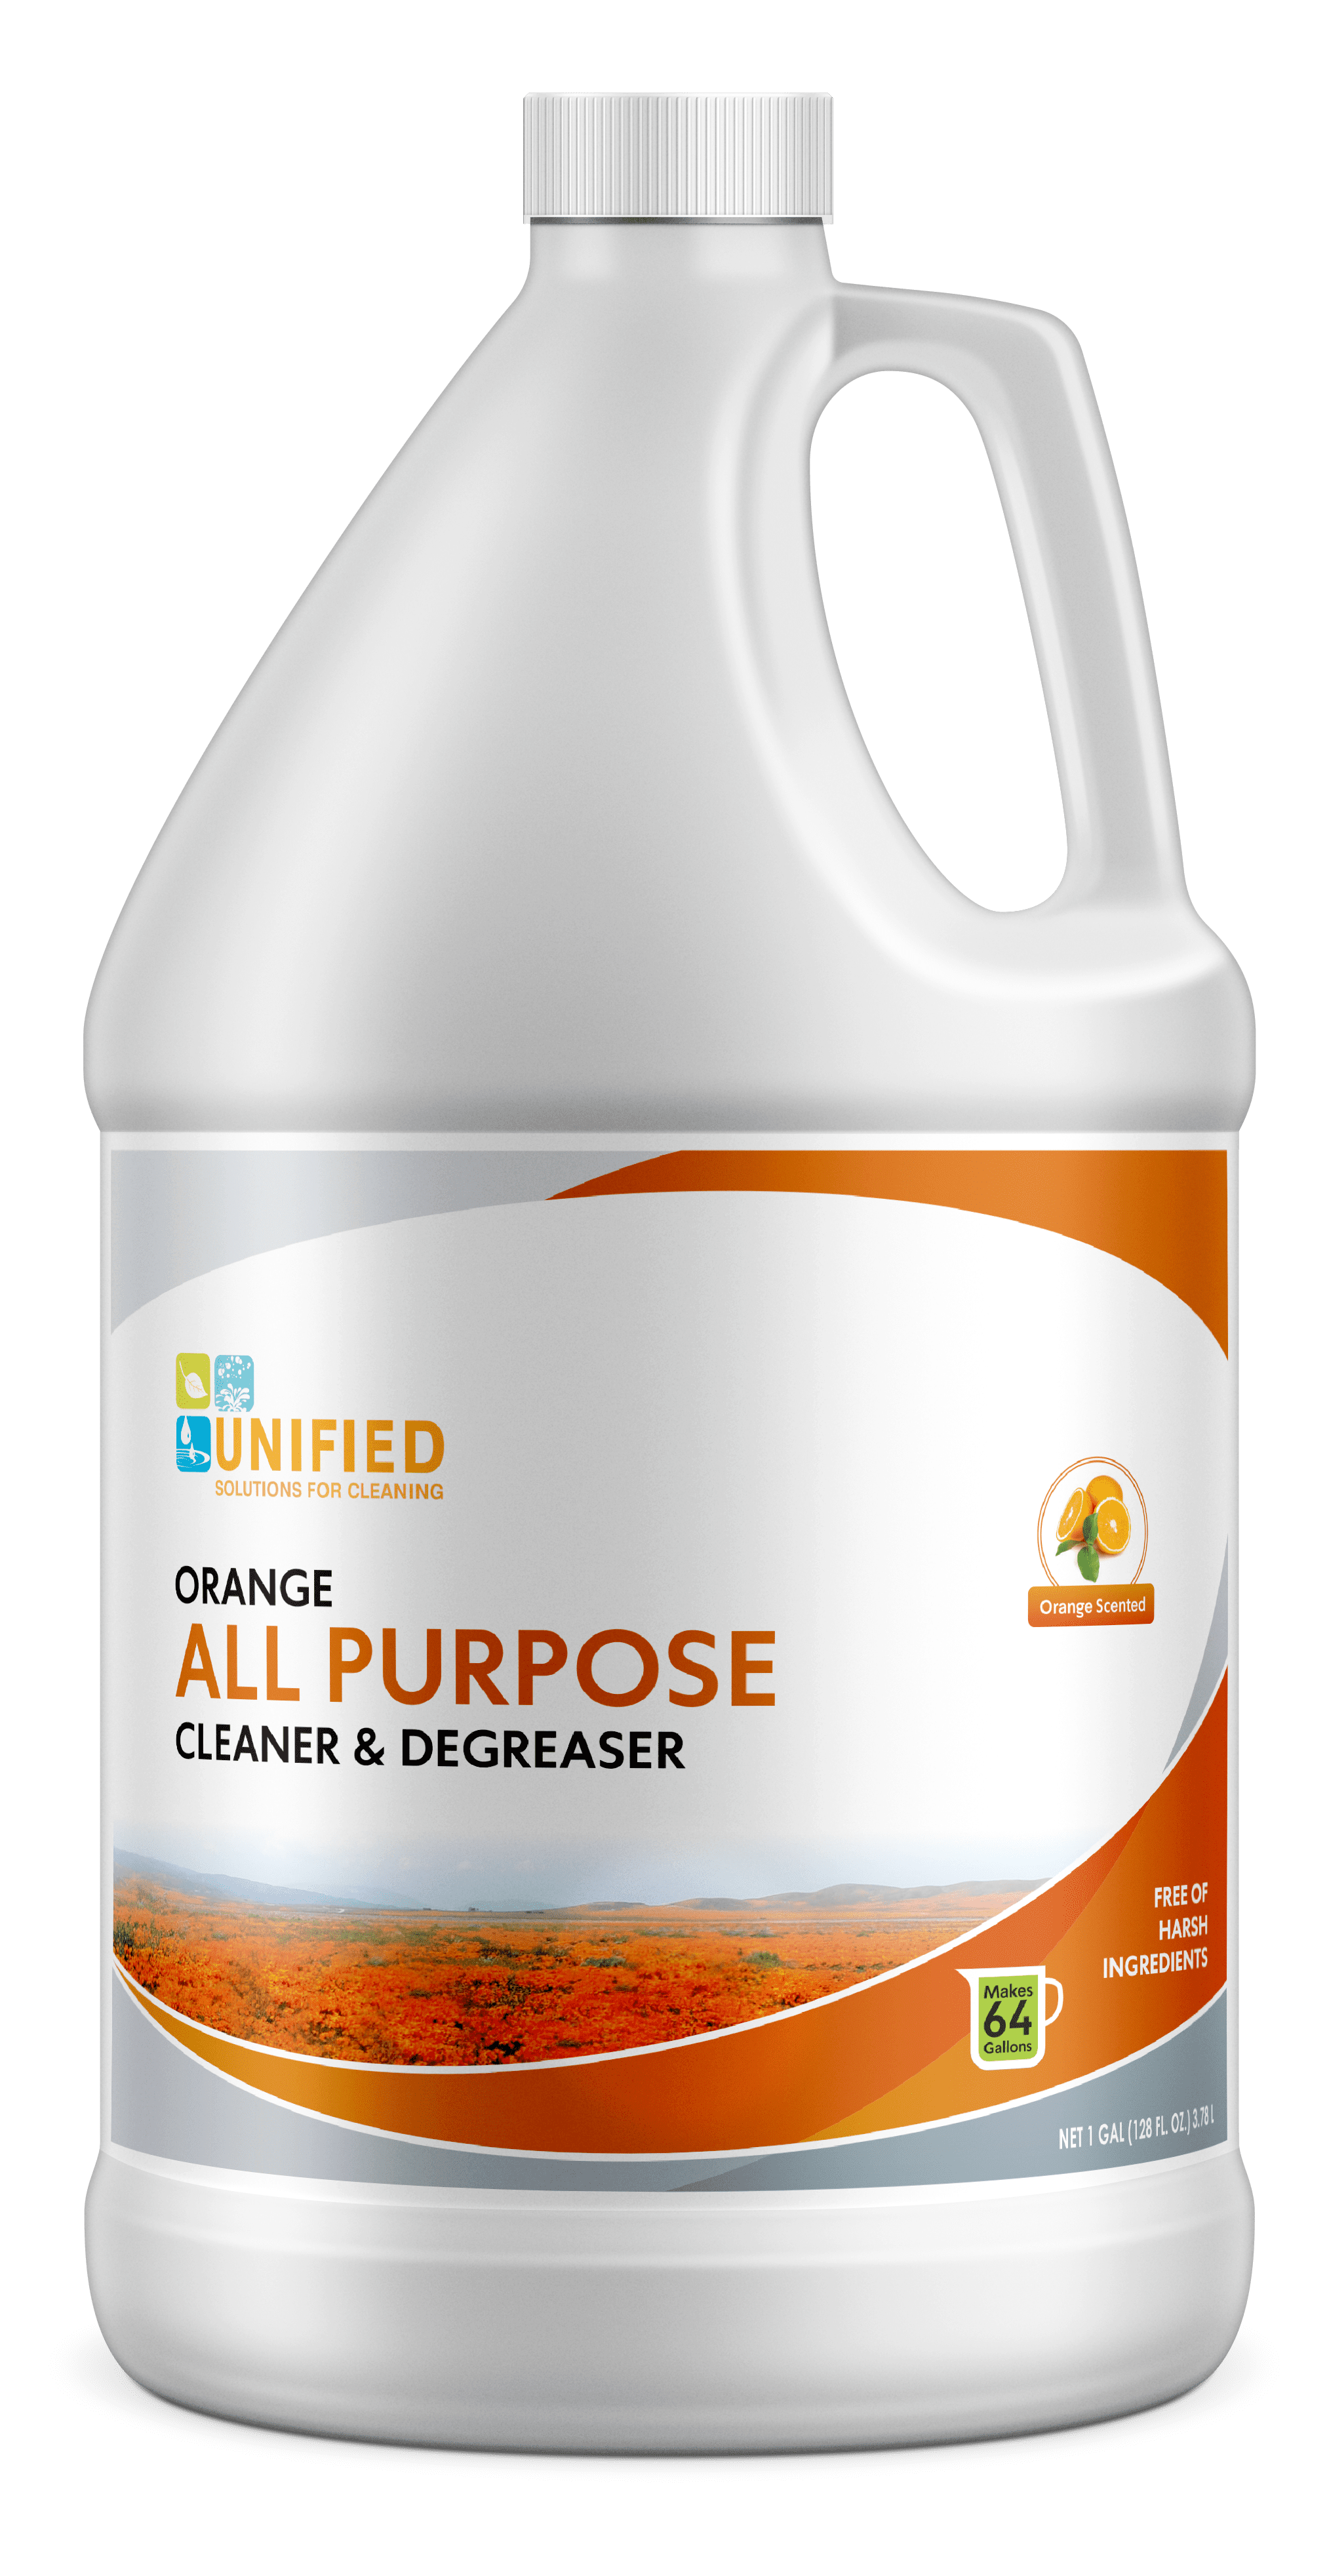 Unified_Orange_All_Purpose_Cleaner_Degreaser